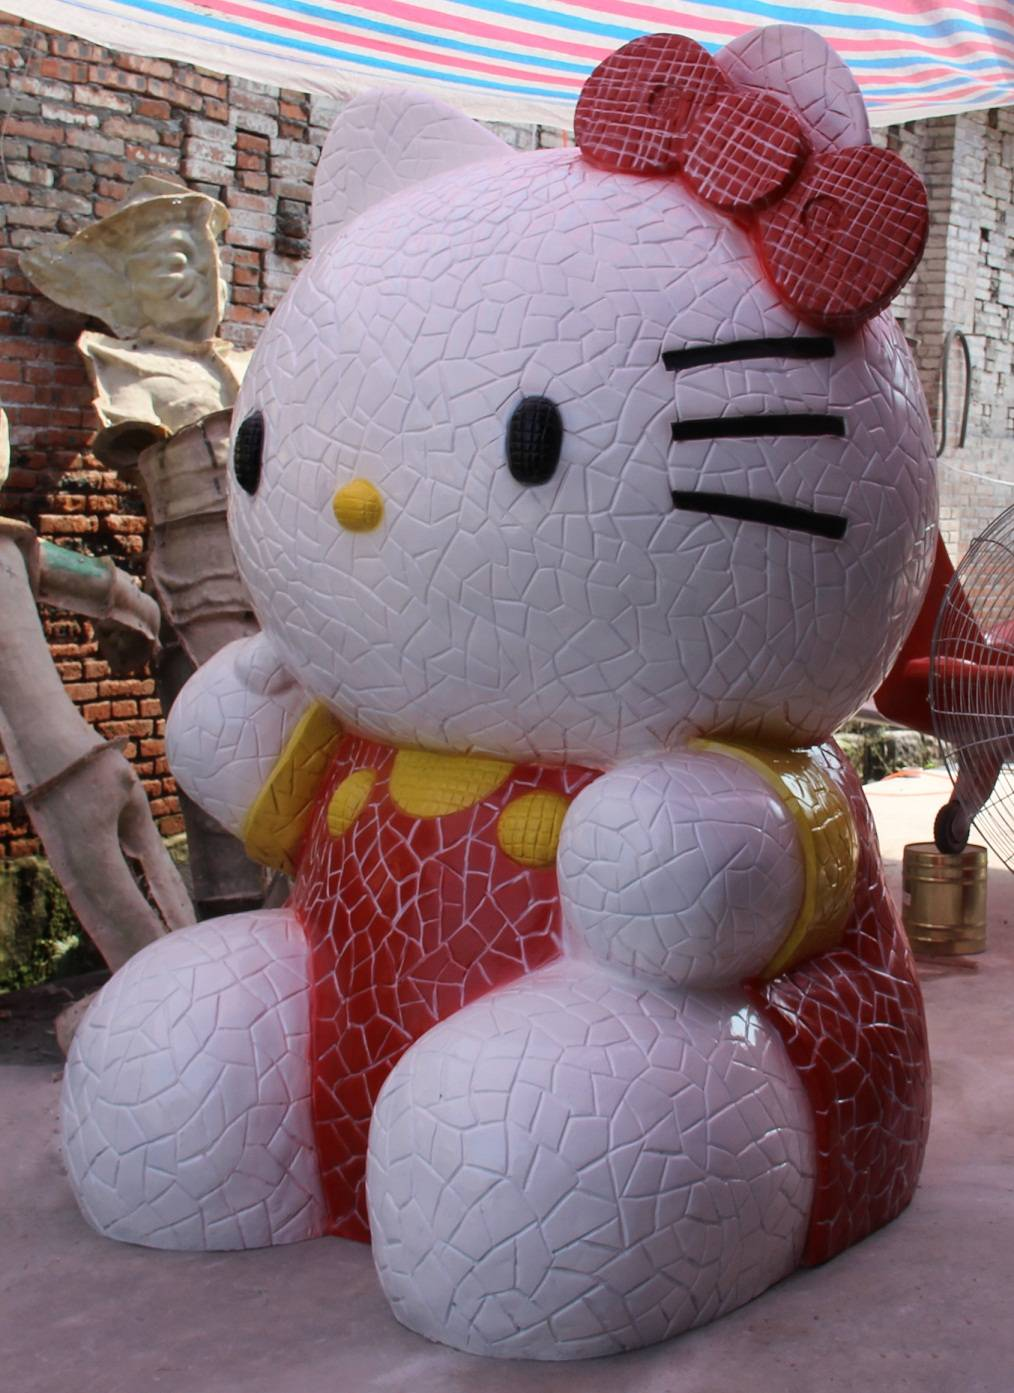 Newly made fiberglass hello kitty sculpture for park decoration